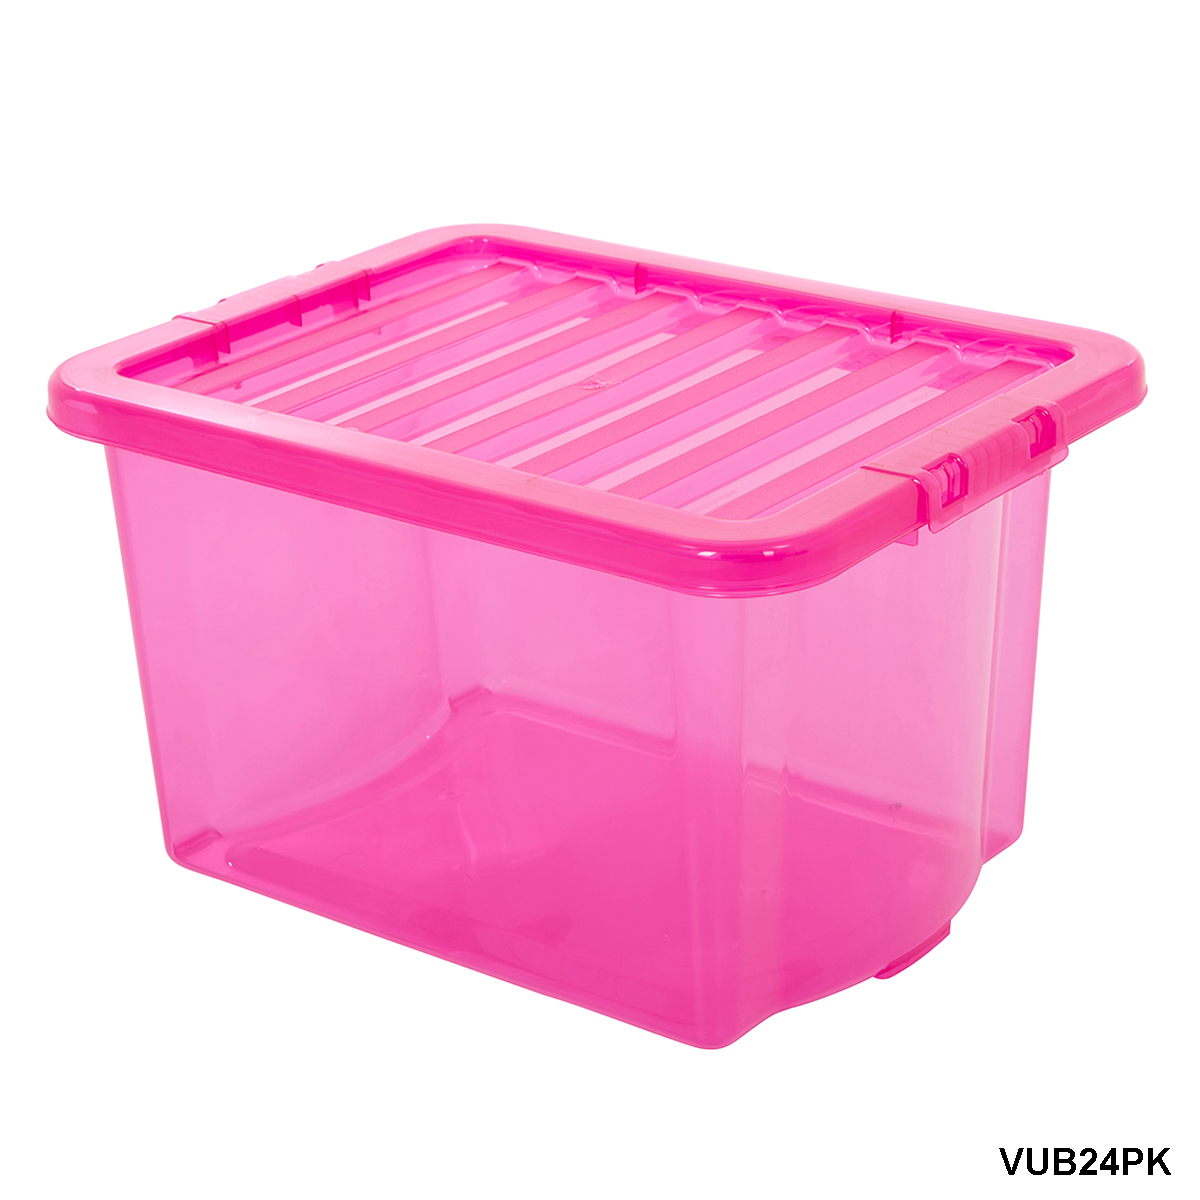 Beau Plastic Storage Containers